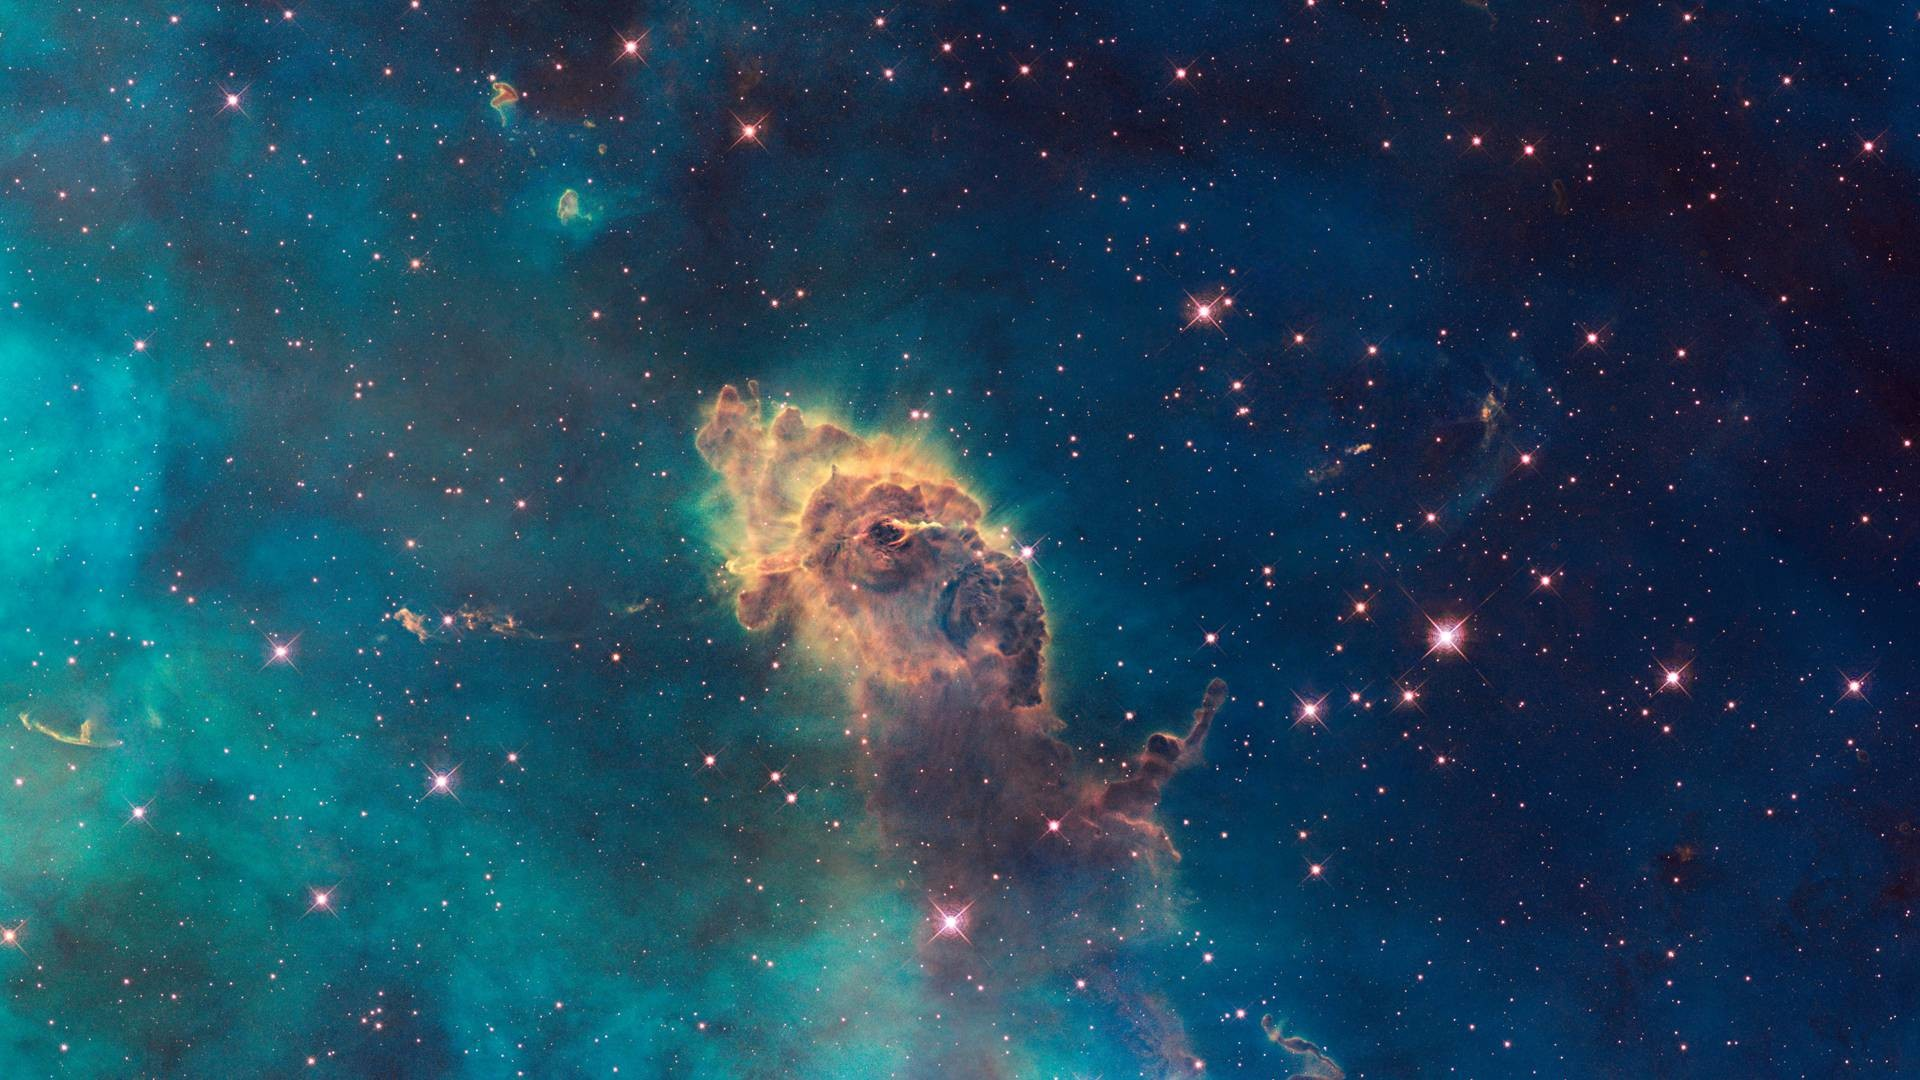 Related Wallpapers from Space Wallpaper